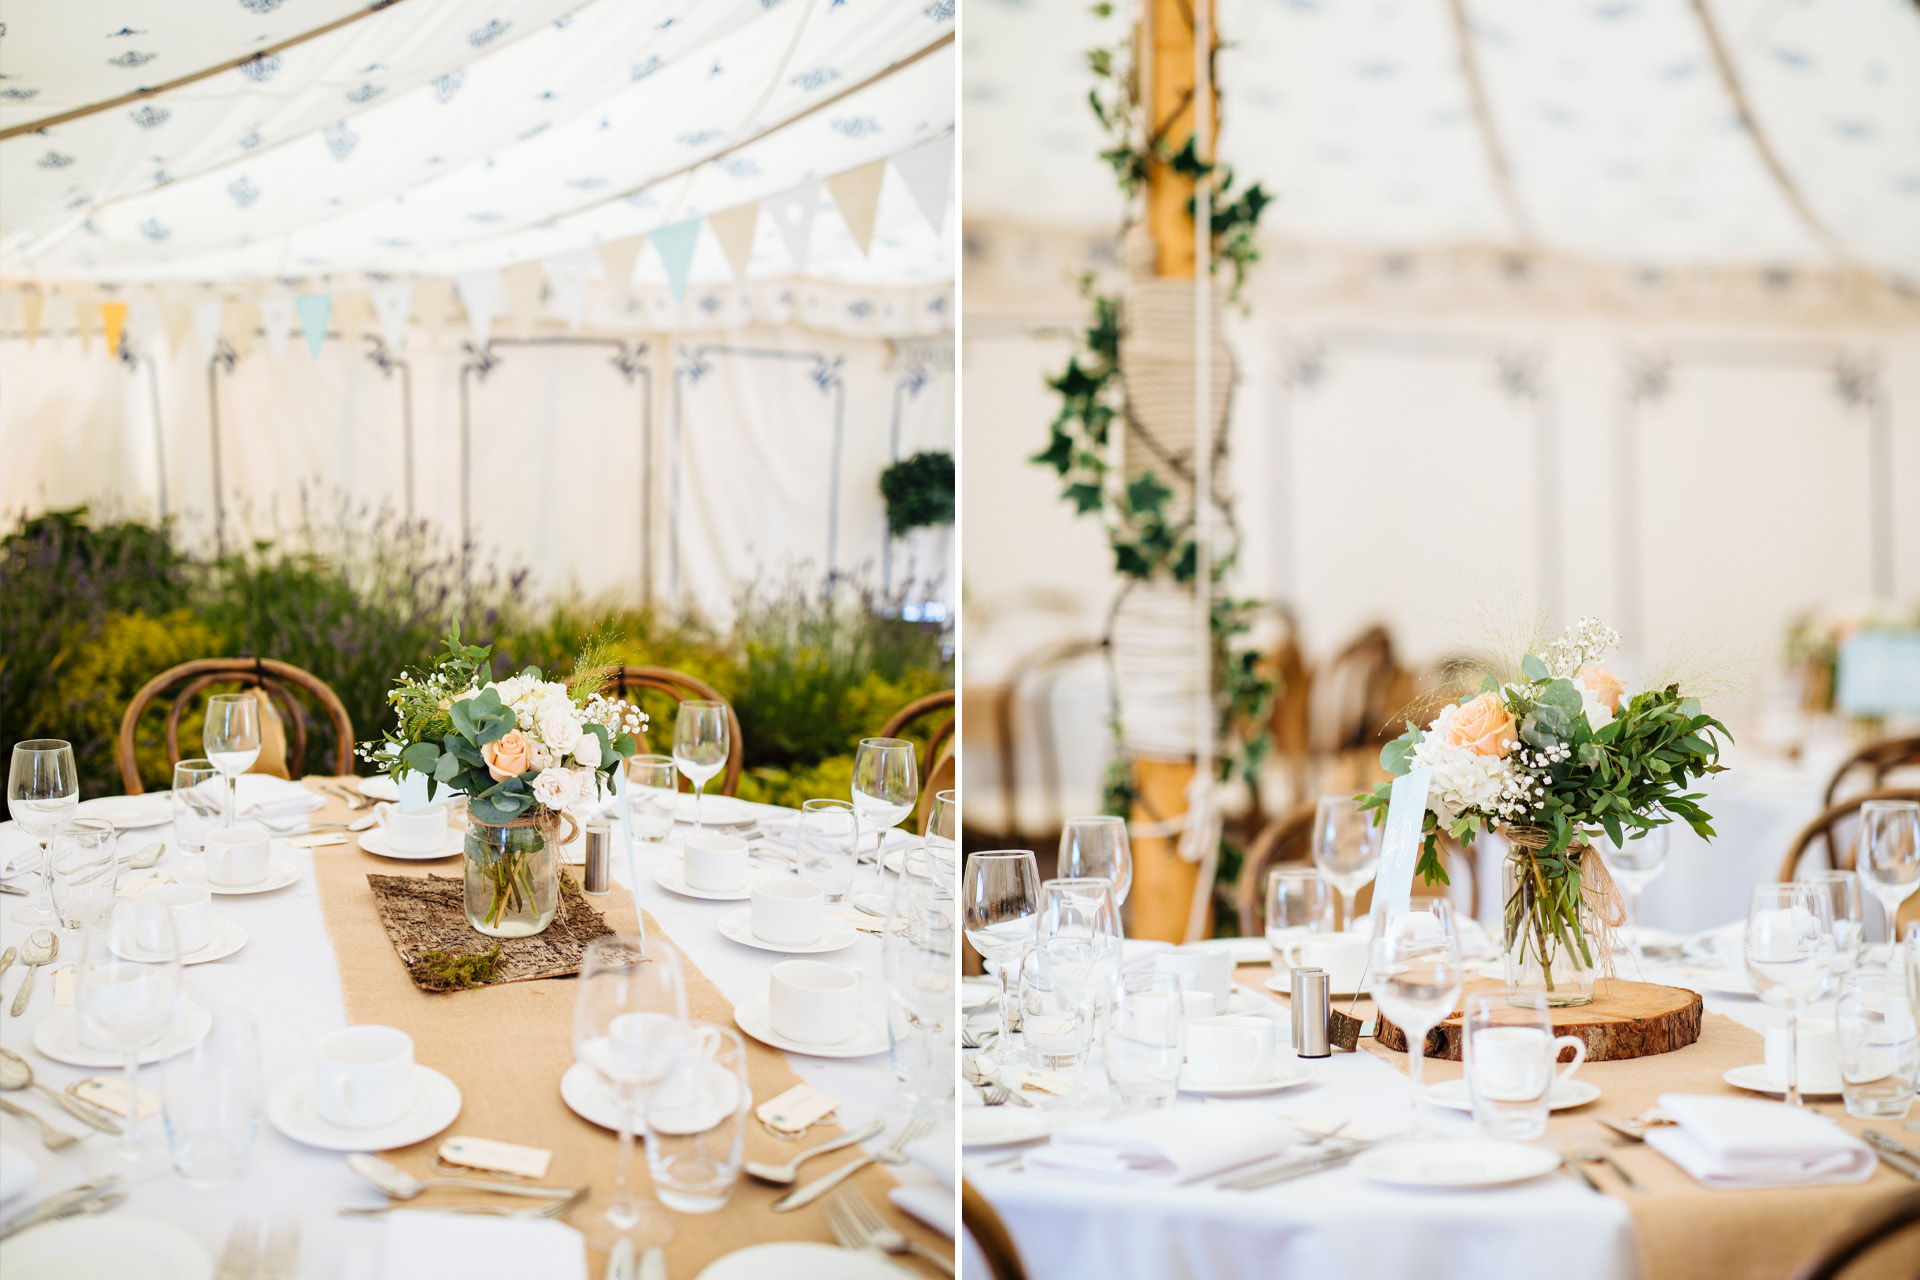 sailcloth tent decorated with flowers, burlap and ivy at kentfield farm wedding